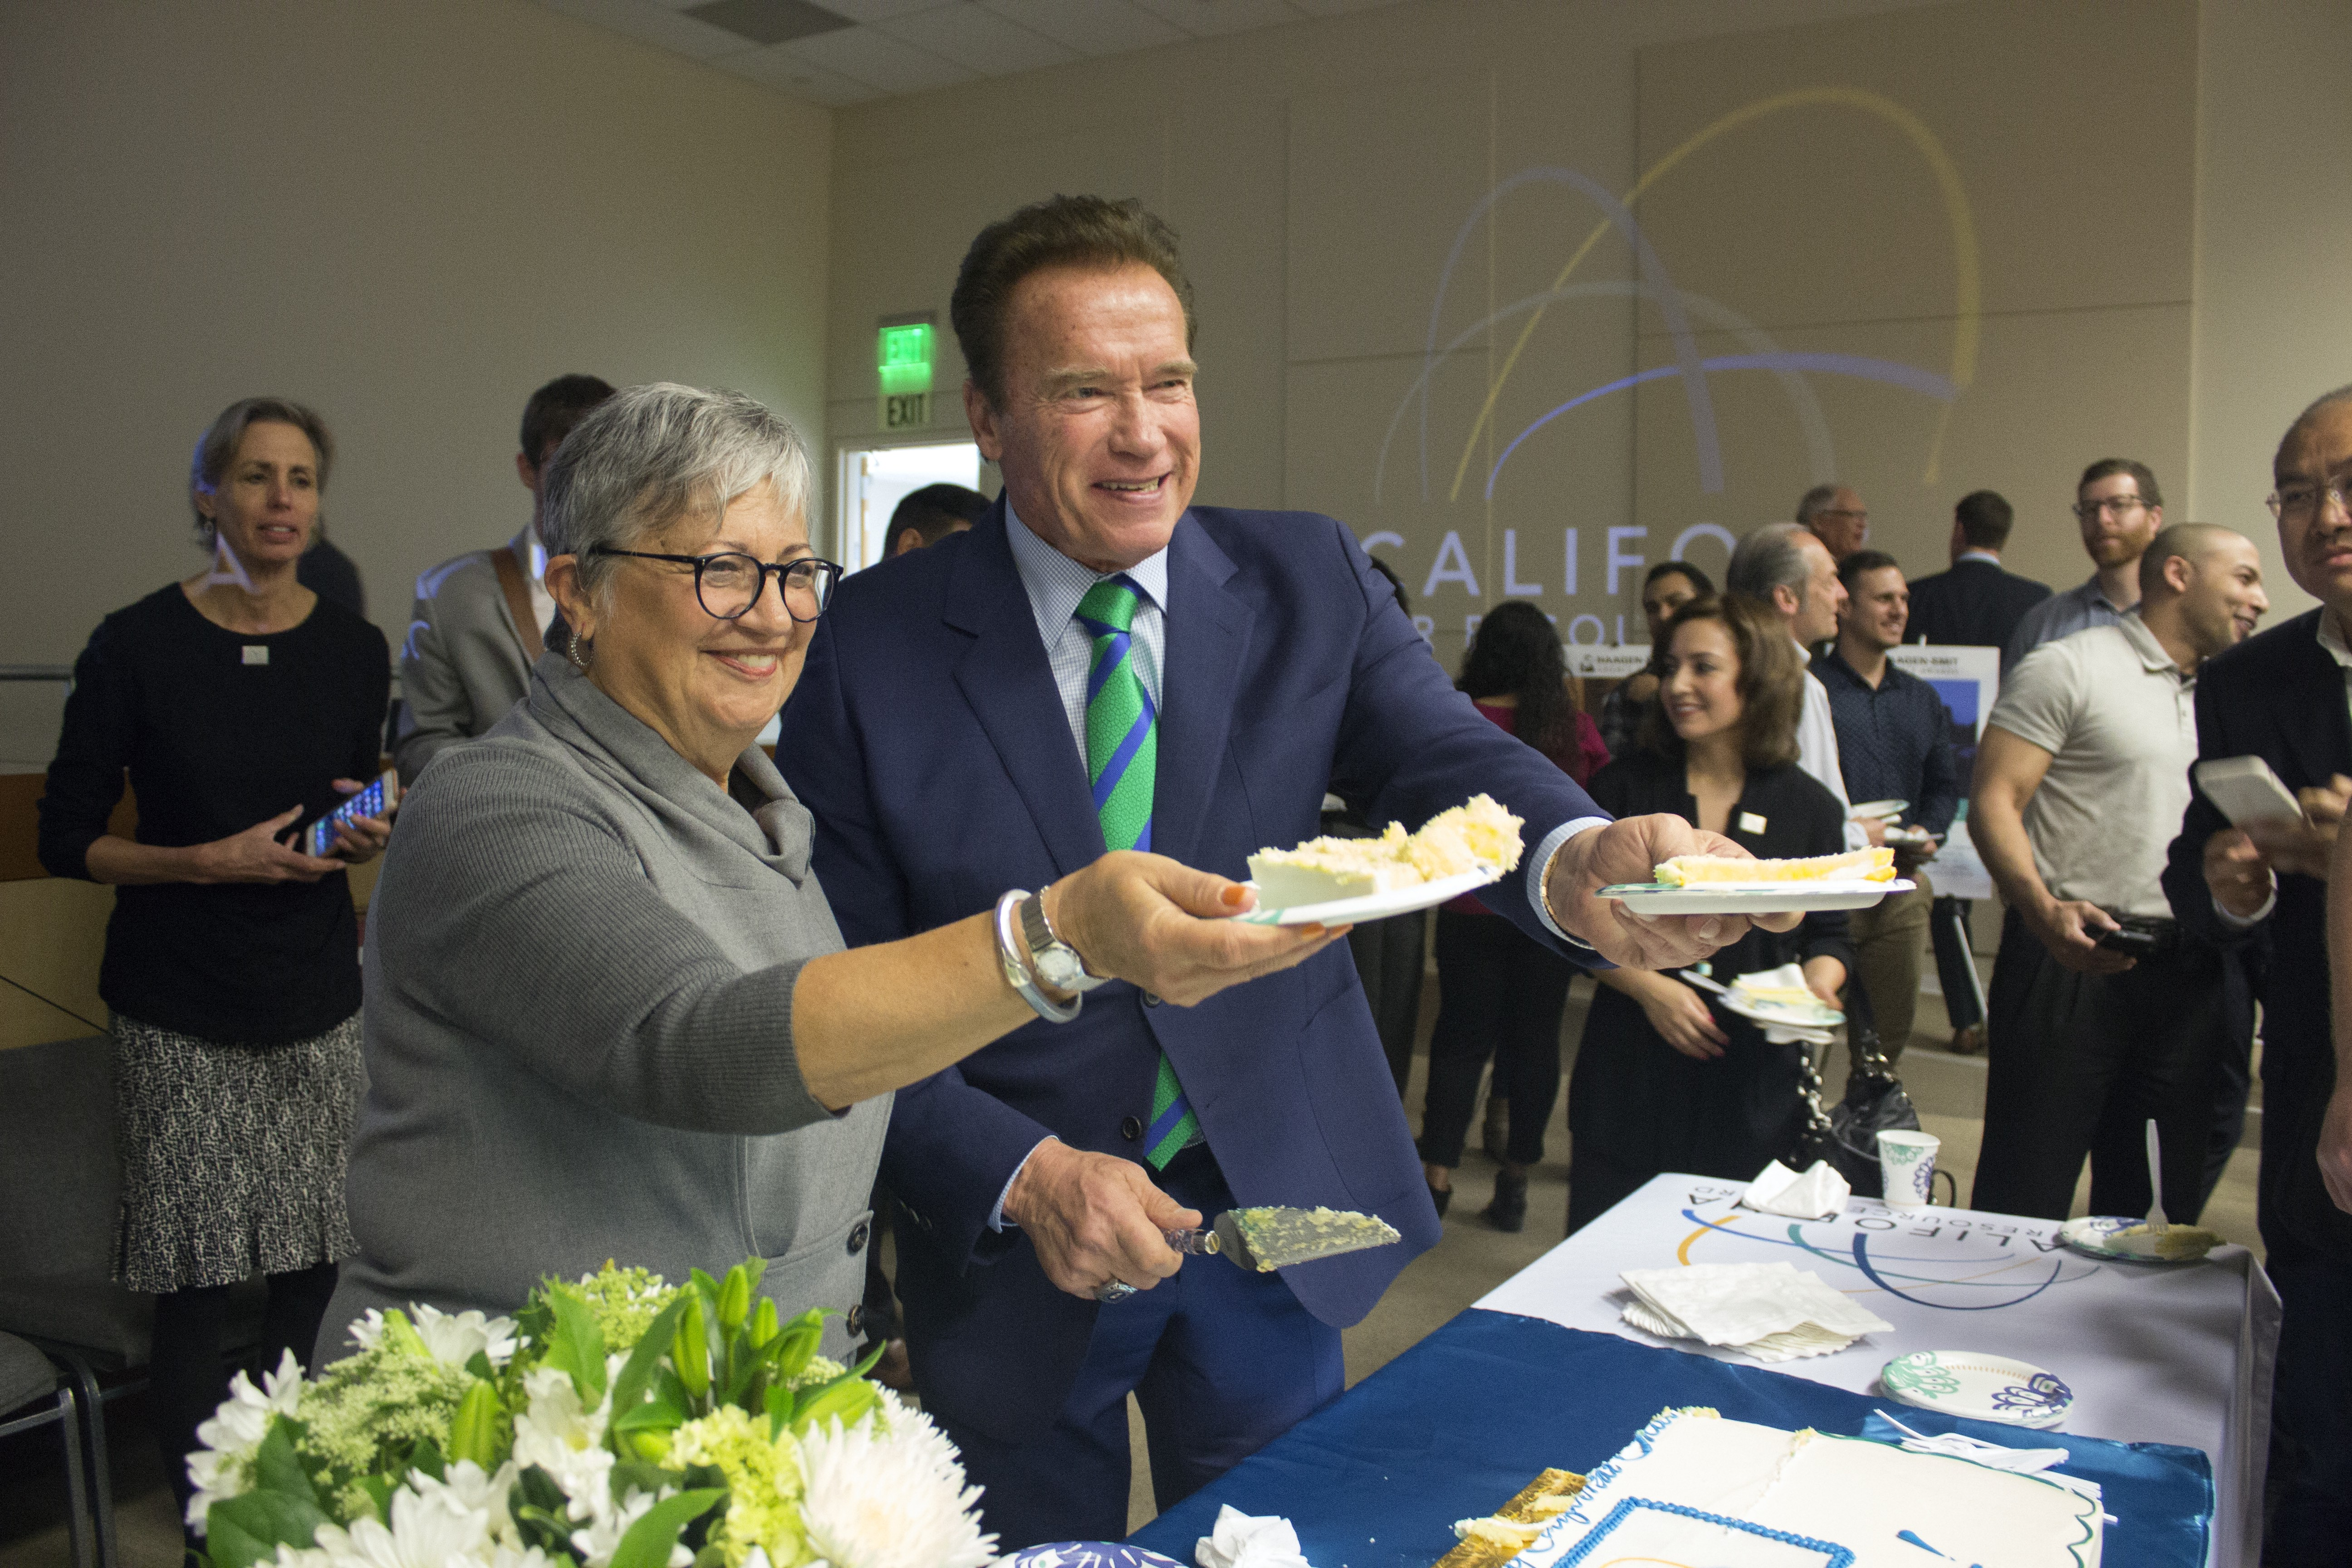 Chair Nichols & former Governor Schwarzenegger hand out cake for 50th Anniversary Celebration